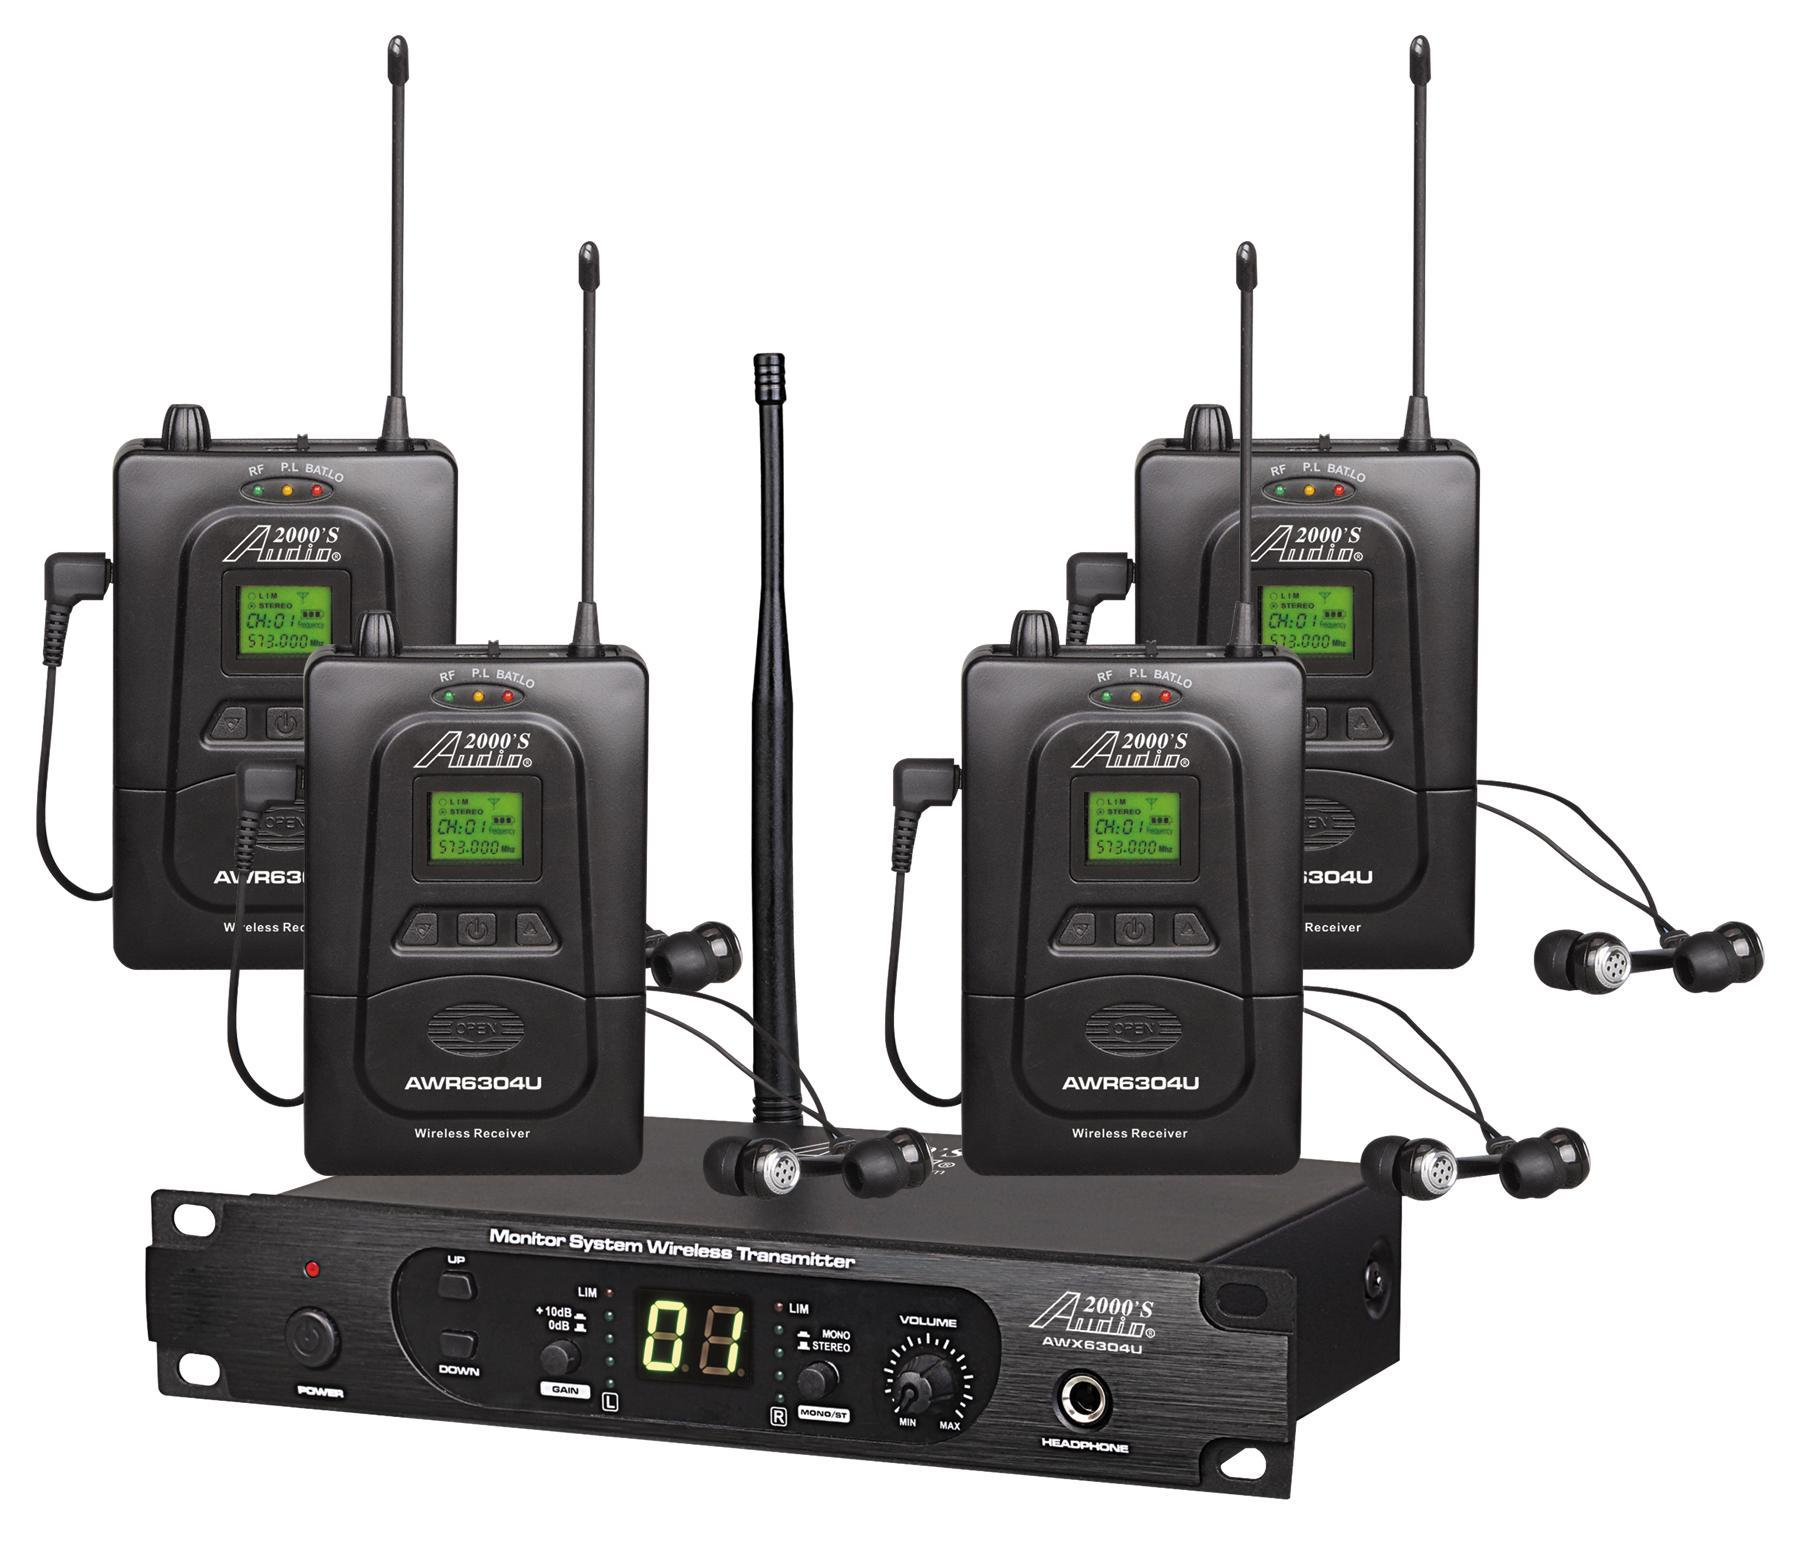 audio2000 39 s in in ear audio monitor system awm6304u musical instruments. Black Bedroom Furniture Sets. Home Design Ideas